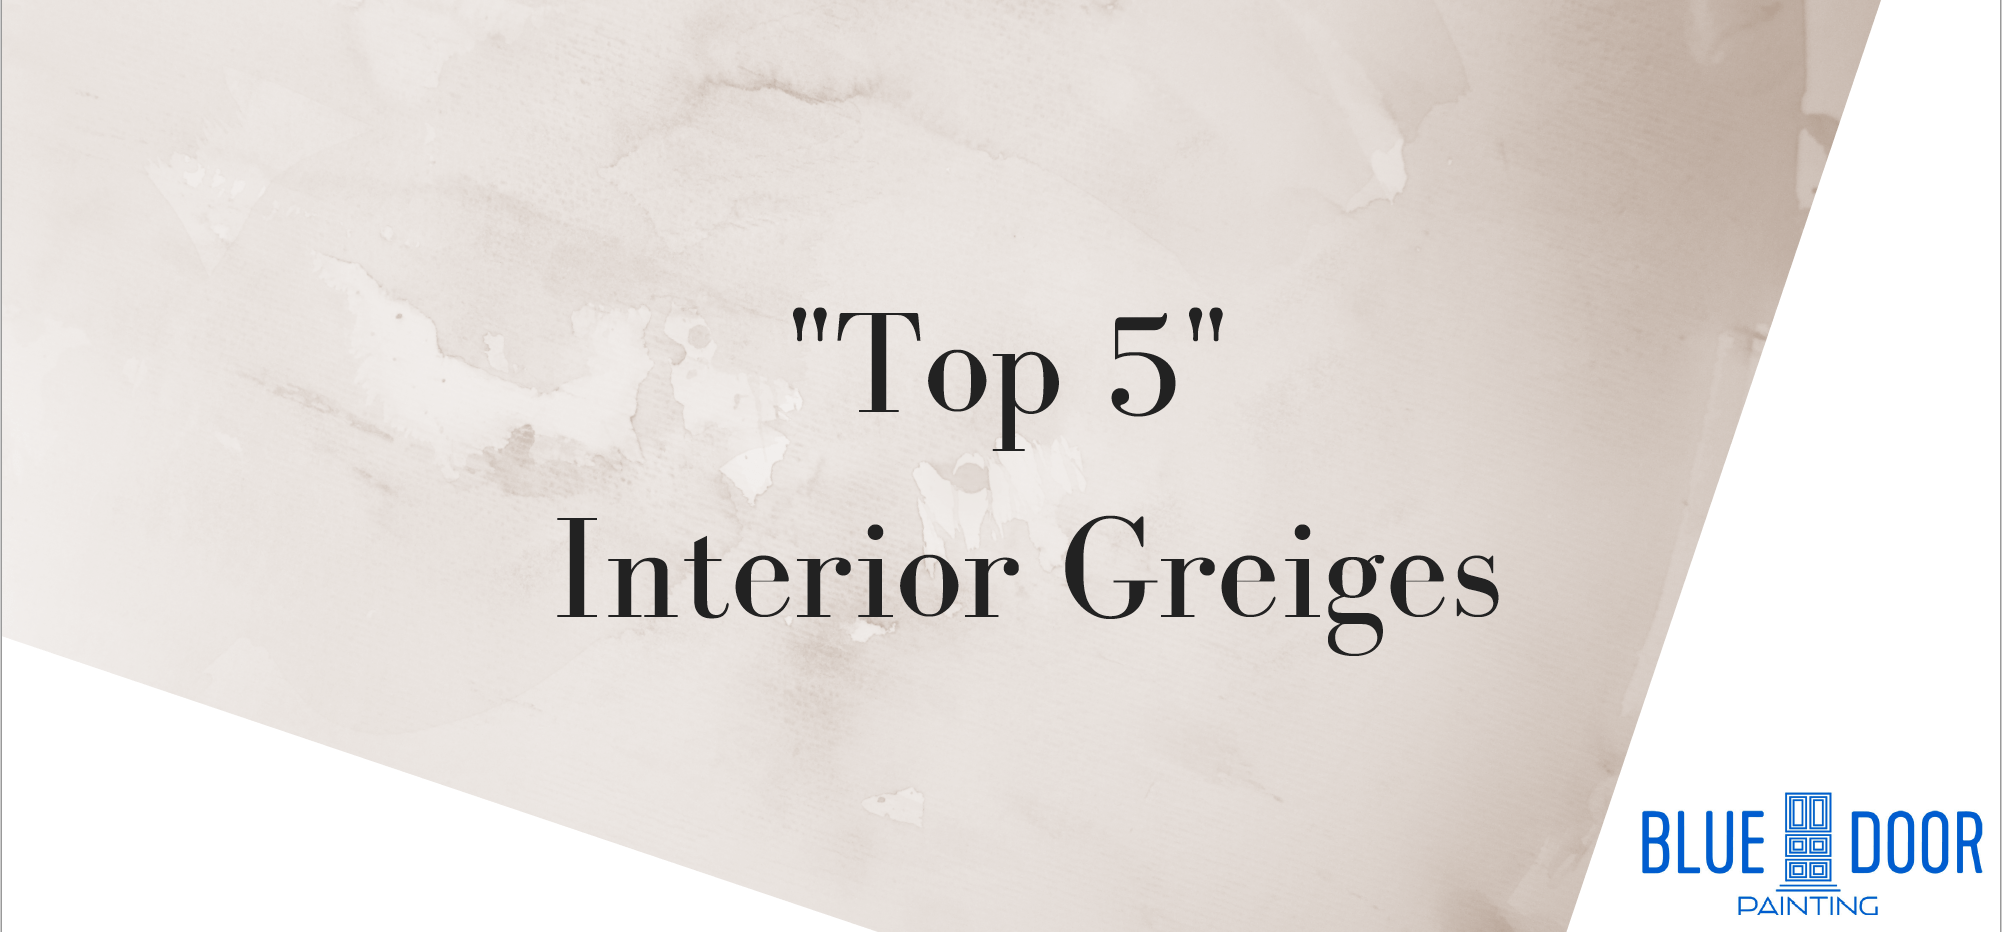 Perfect Greige SW 6073, Mega Greige SW 7031, Sticks and Stones SW 7503, Alpaca SW  7022 , Agreeable Gray SW 7029, blue door painting, chicago painters